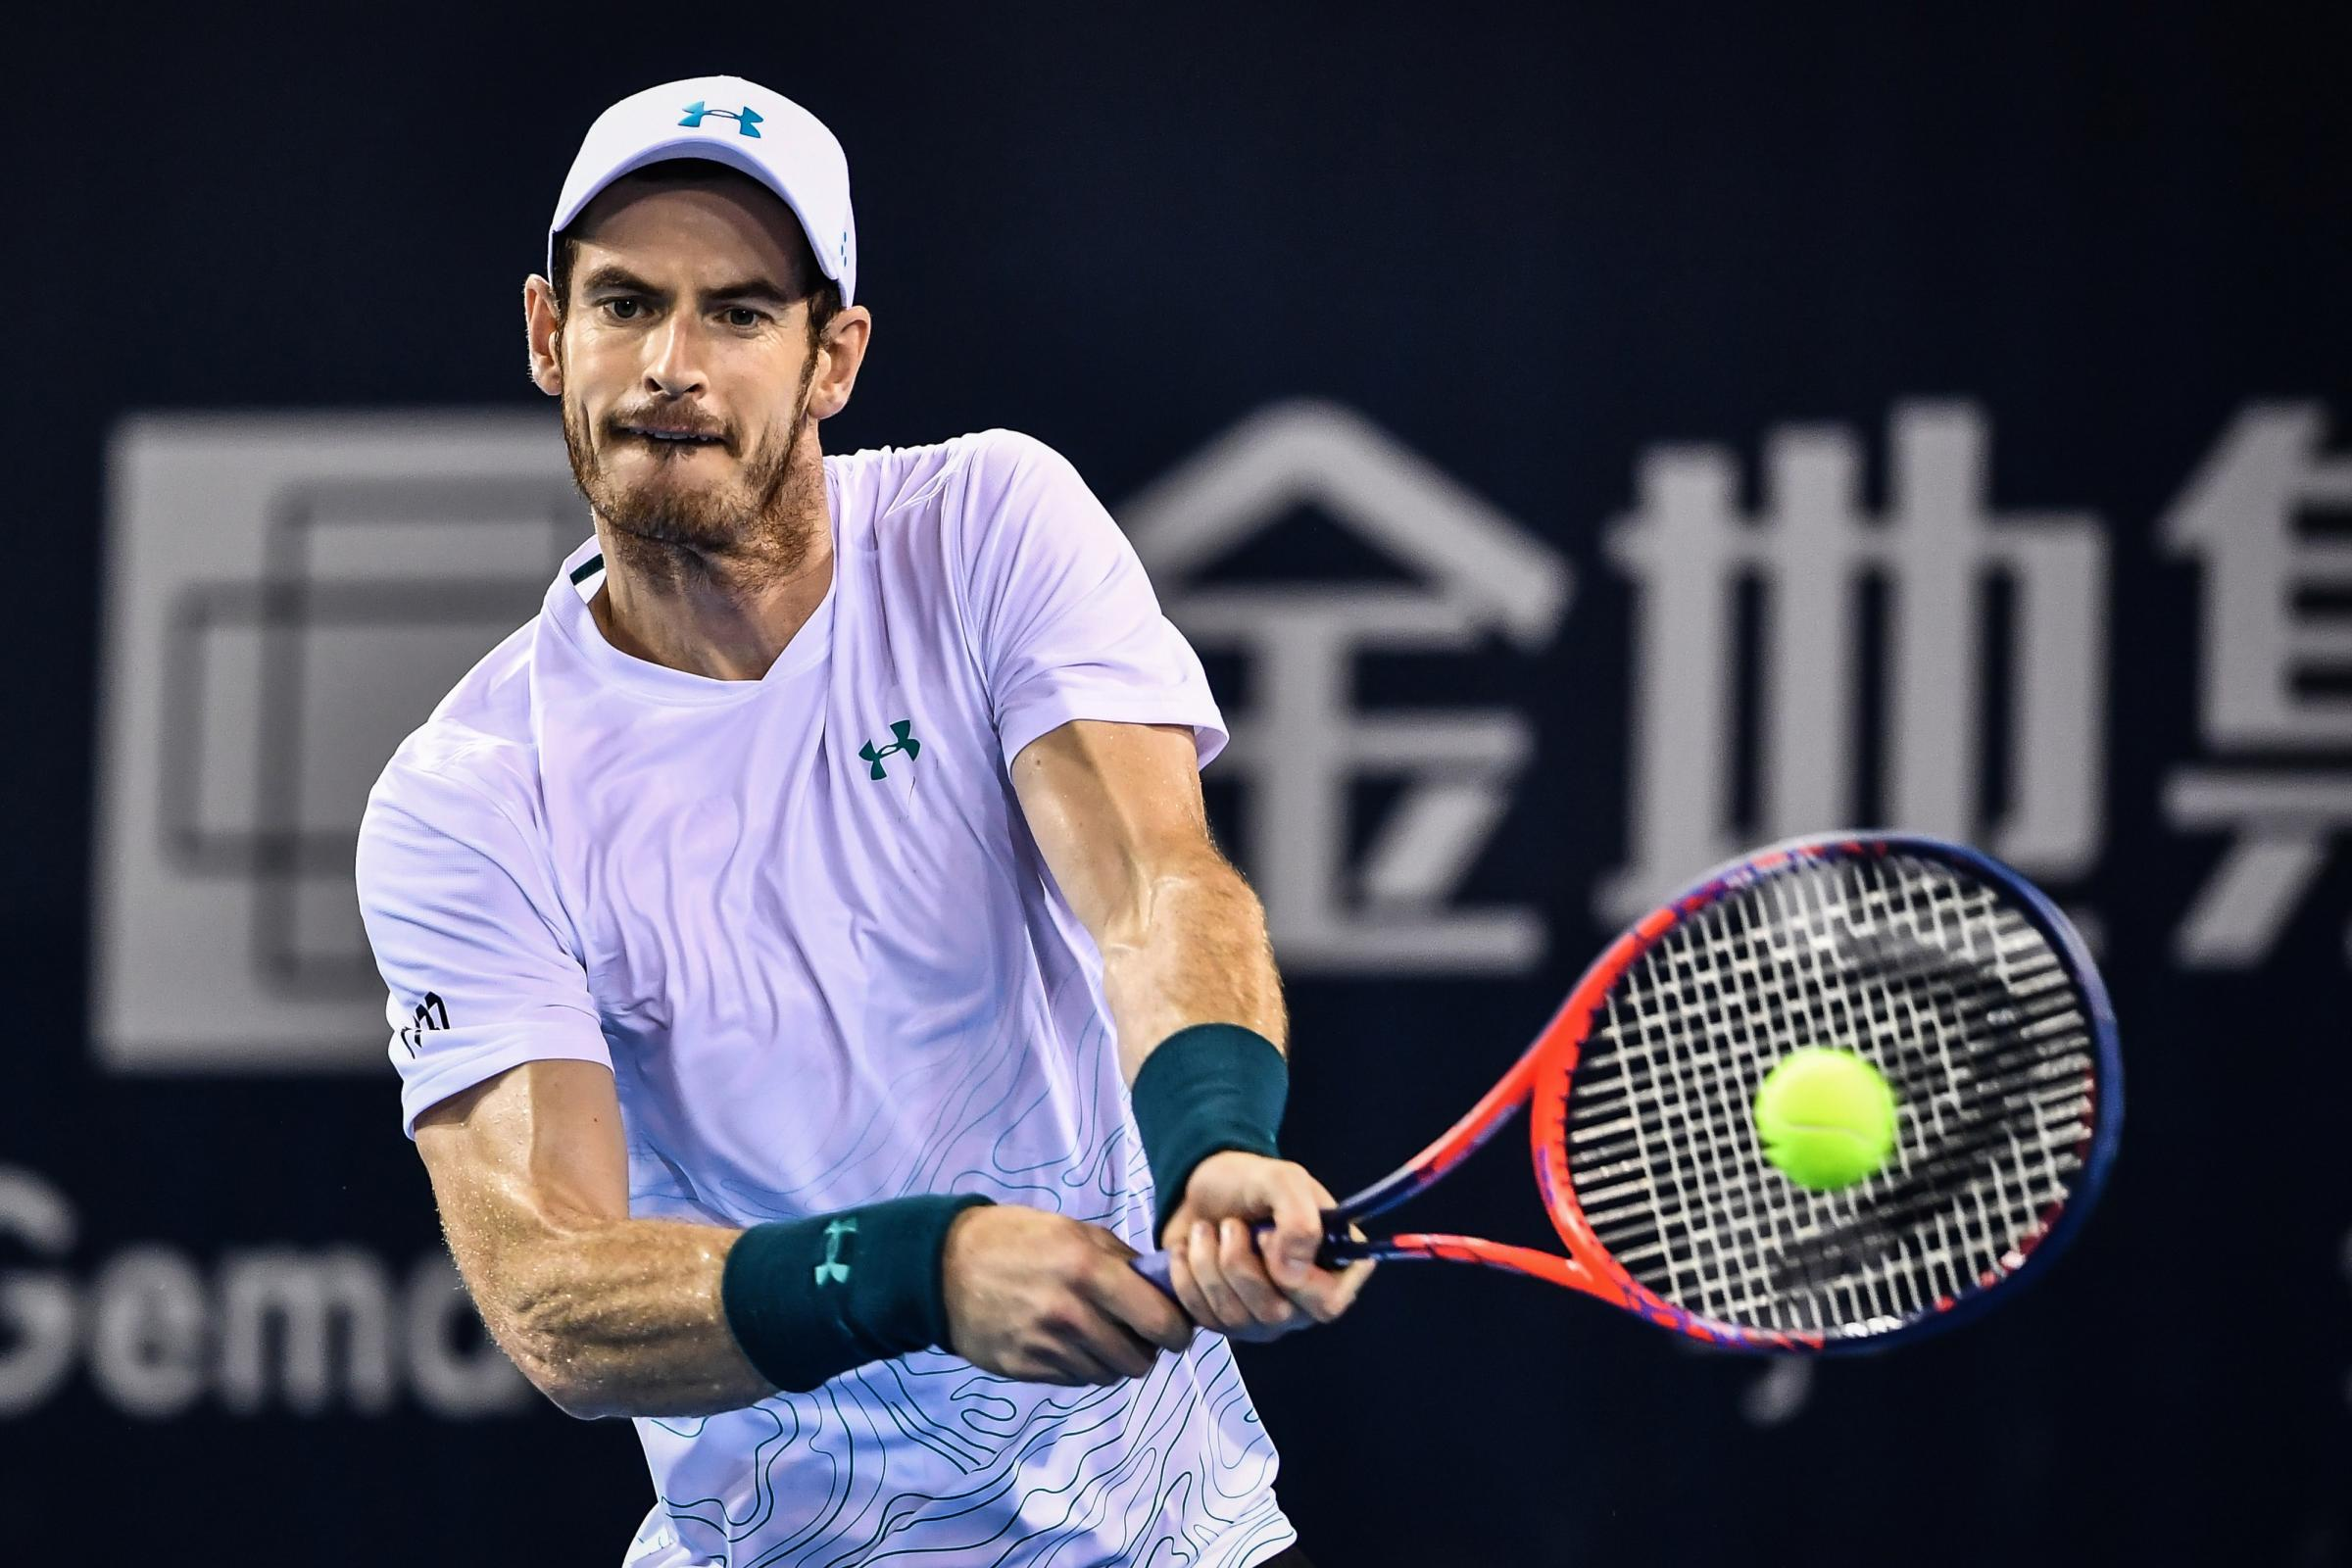 Andy Murray of Britain hits a return during his men's singles match against Fernando Verdasco of Spain at the ATP Shenzhen Open tennis tournament in Shenzhen, in south China's Guangdong province on September 28, 2018. (Photo by - / AFP) / China OU